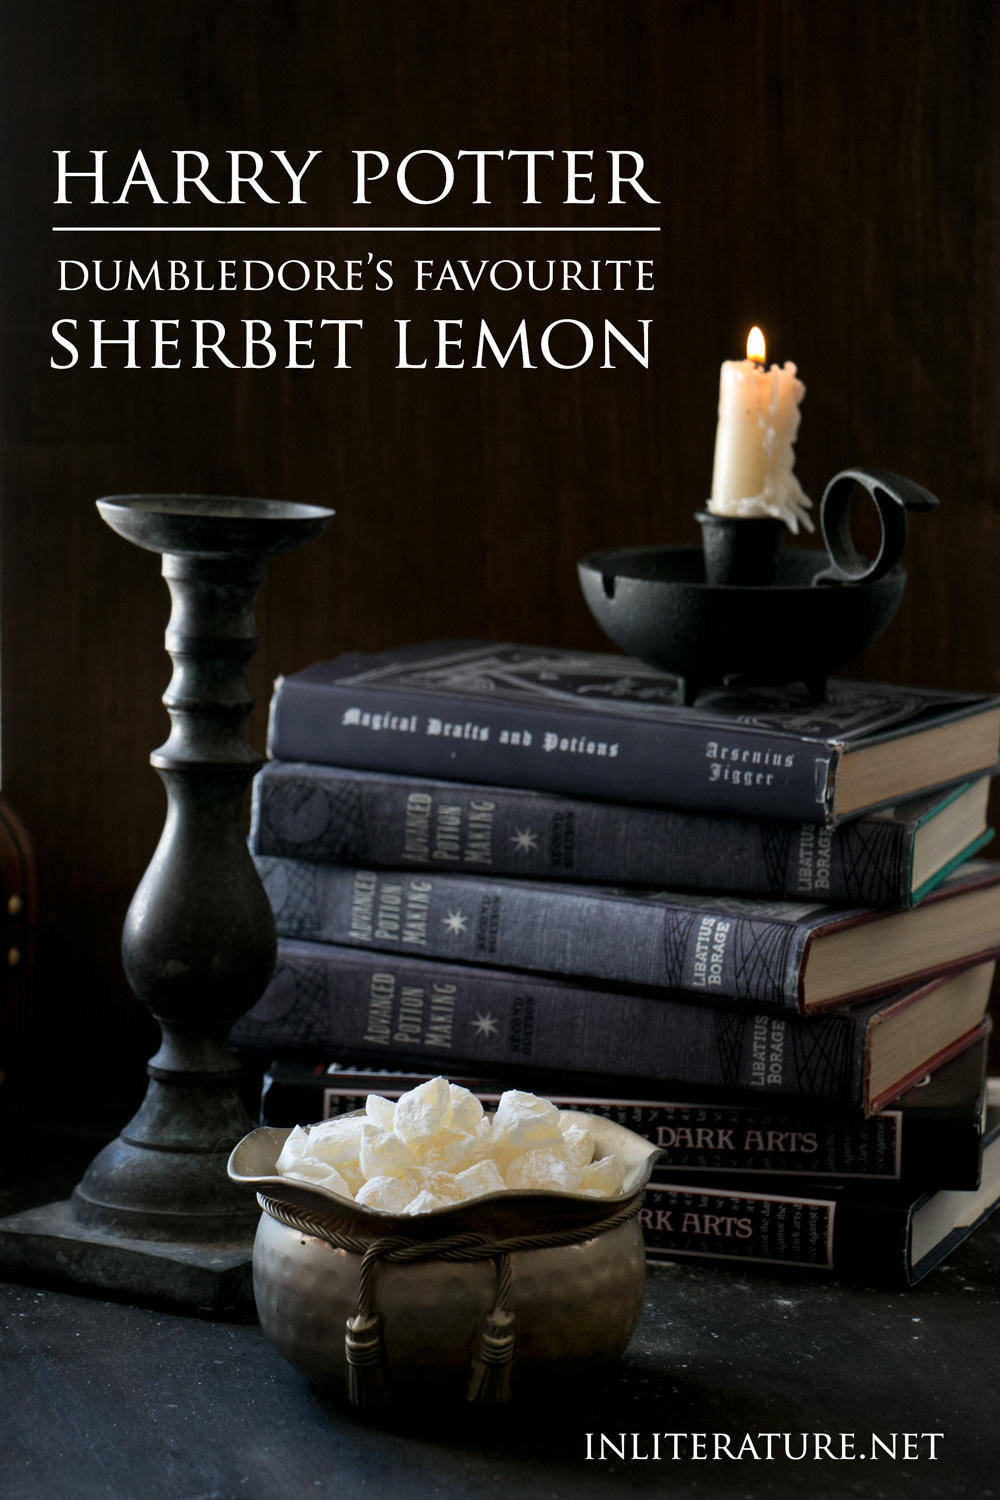 Harry Potter fan? Indulge in Dumbledore's favourite sweet, sherbet lemon.